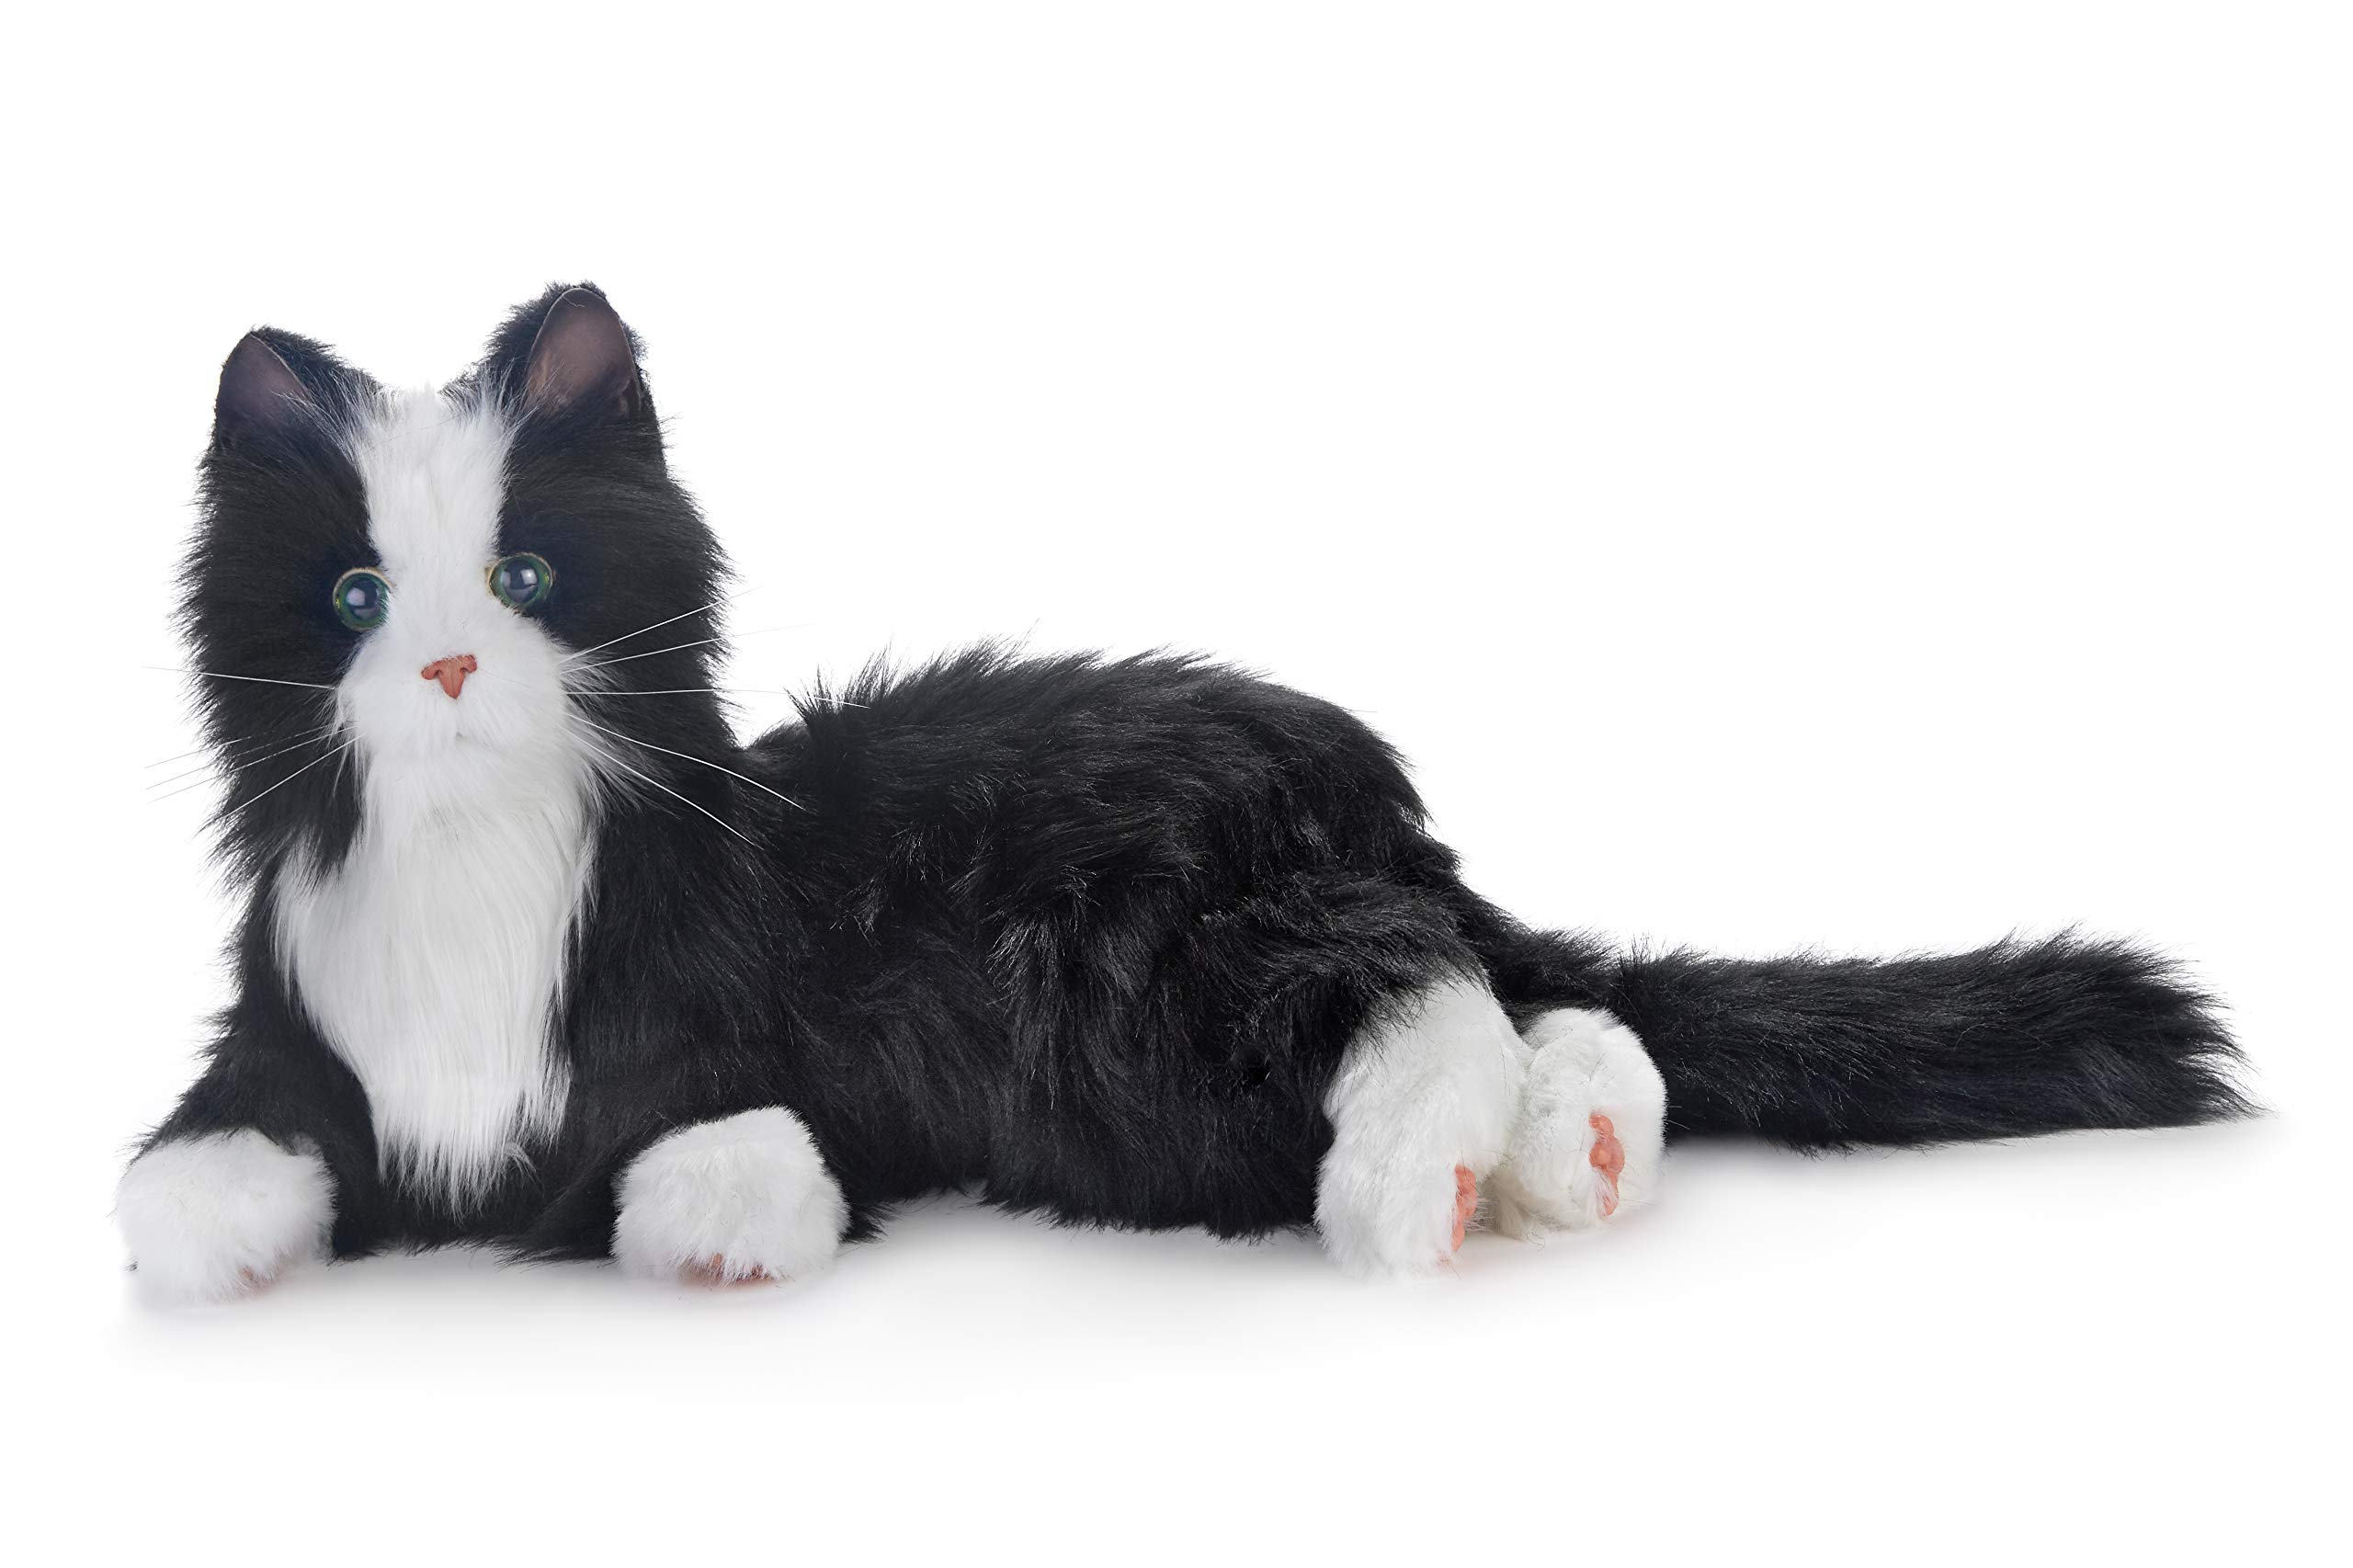 New Joy for All Robotic Reclining Black & White Tuxedo Cat - Stuffed Animal Therapy for People with Memory Loss from Aging and Caregivers by Memorable Pets